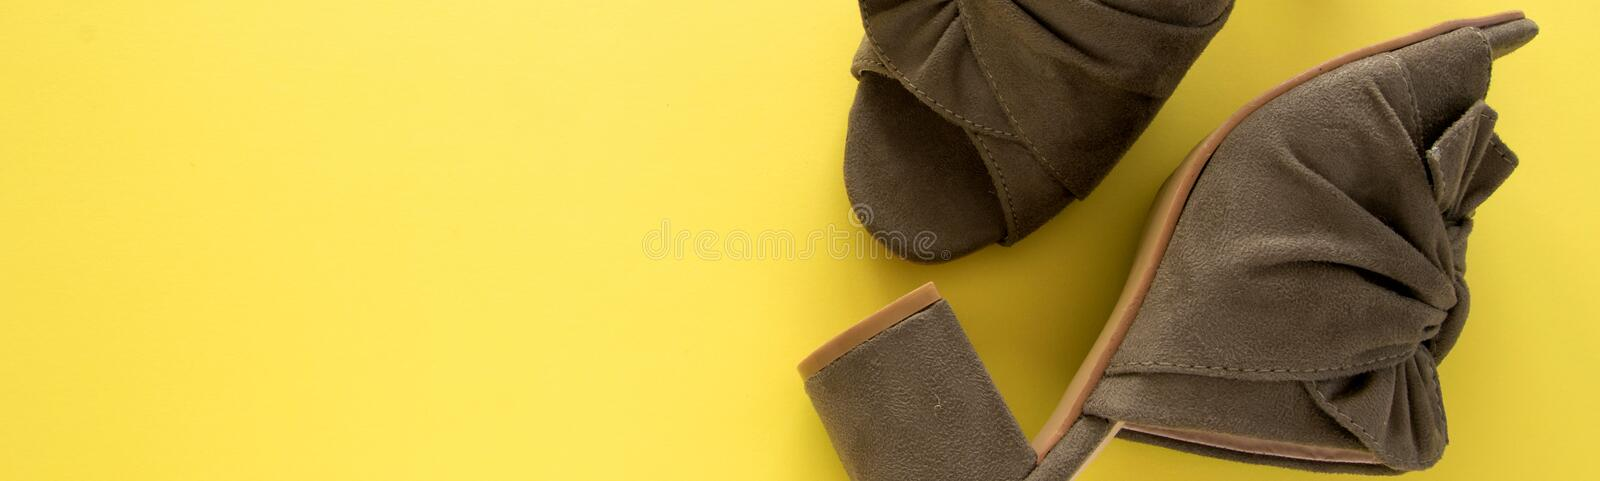 Pair of mules/clogs military green color on fresh yellow background stock photo